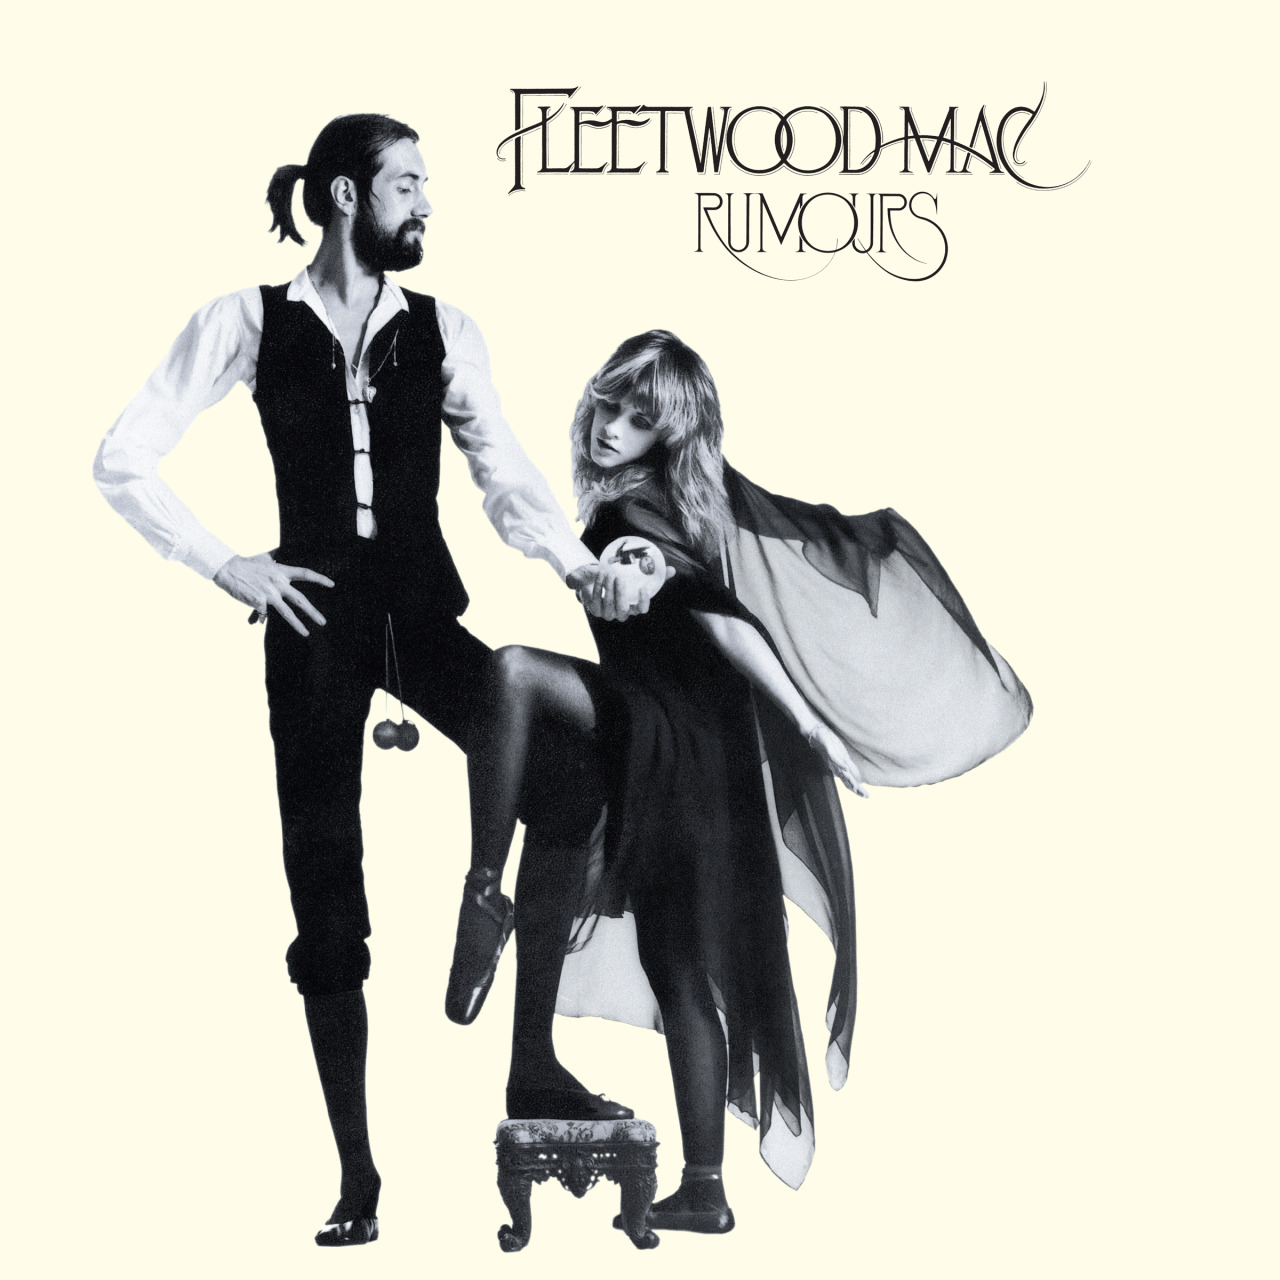 rollingstone:  On January 29th, Fleetwood Mac will reissue their 1977 classic Rumours in a new edition packed with tons of unreleased material from the studio and stage. Now you can get an exclusive first listen to the 12 unreleased live tracks that will be included with the new set.